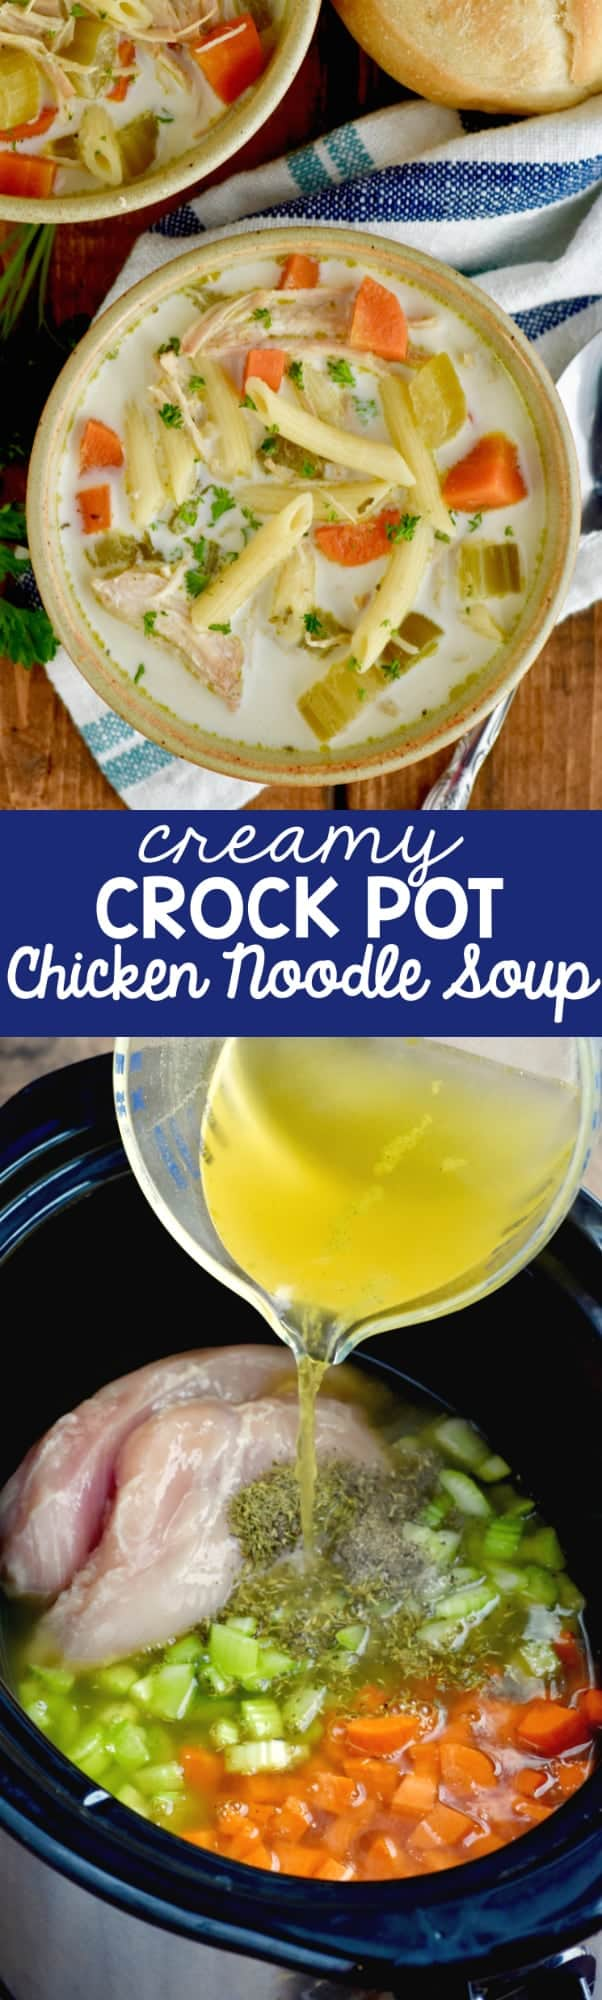 This  Creamy Crock Pot Creamy Chicken Noodle Soup recipe is an easy chicken soup that whips up fast but is full of amazing flavor!